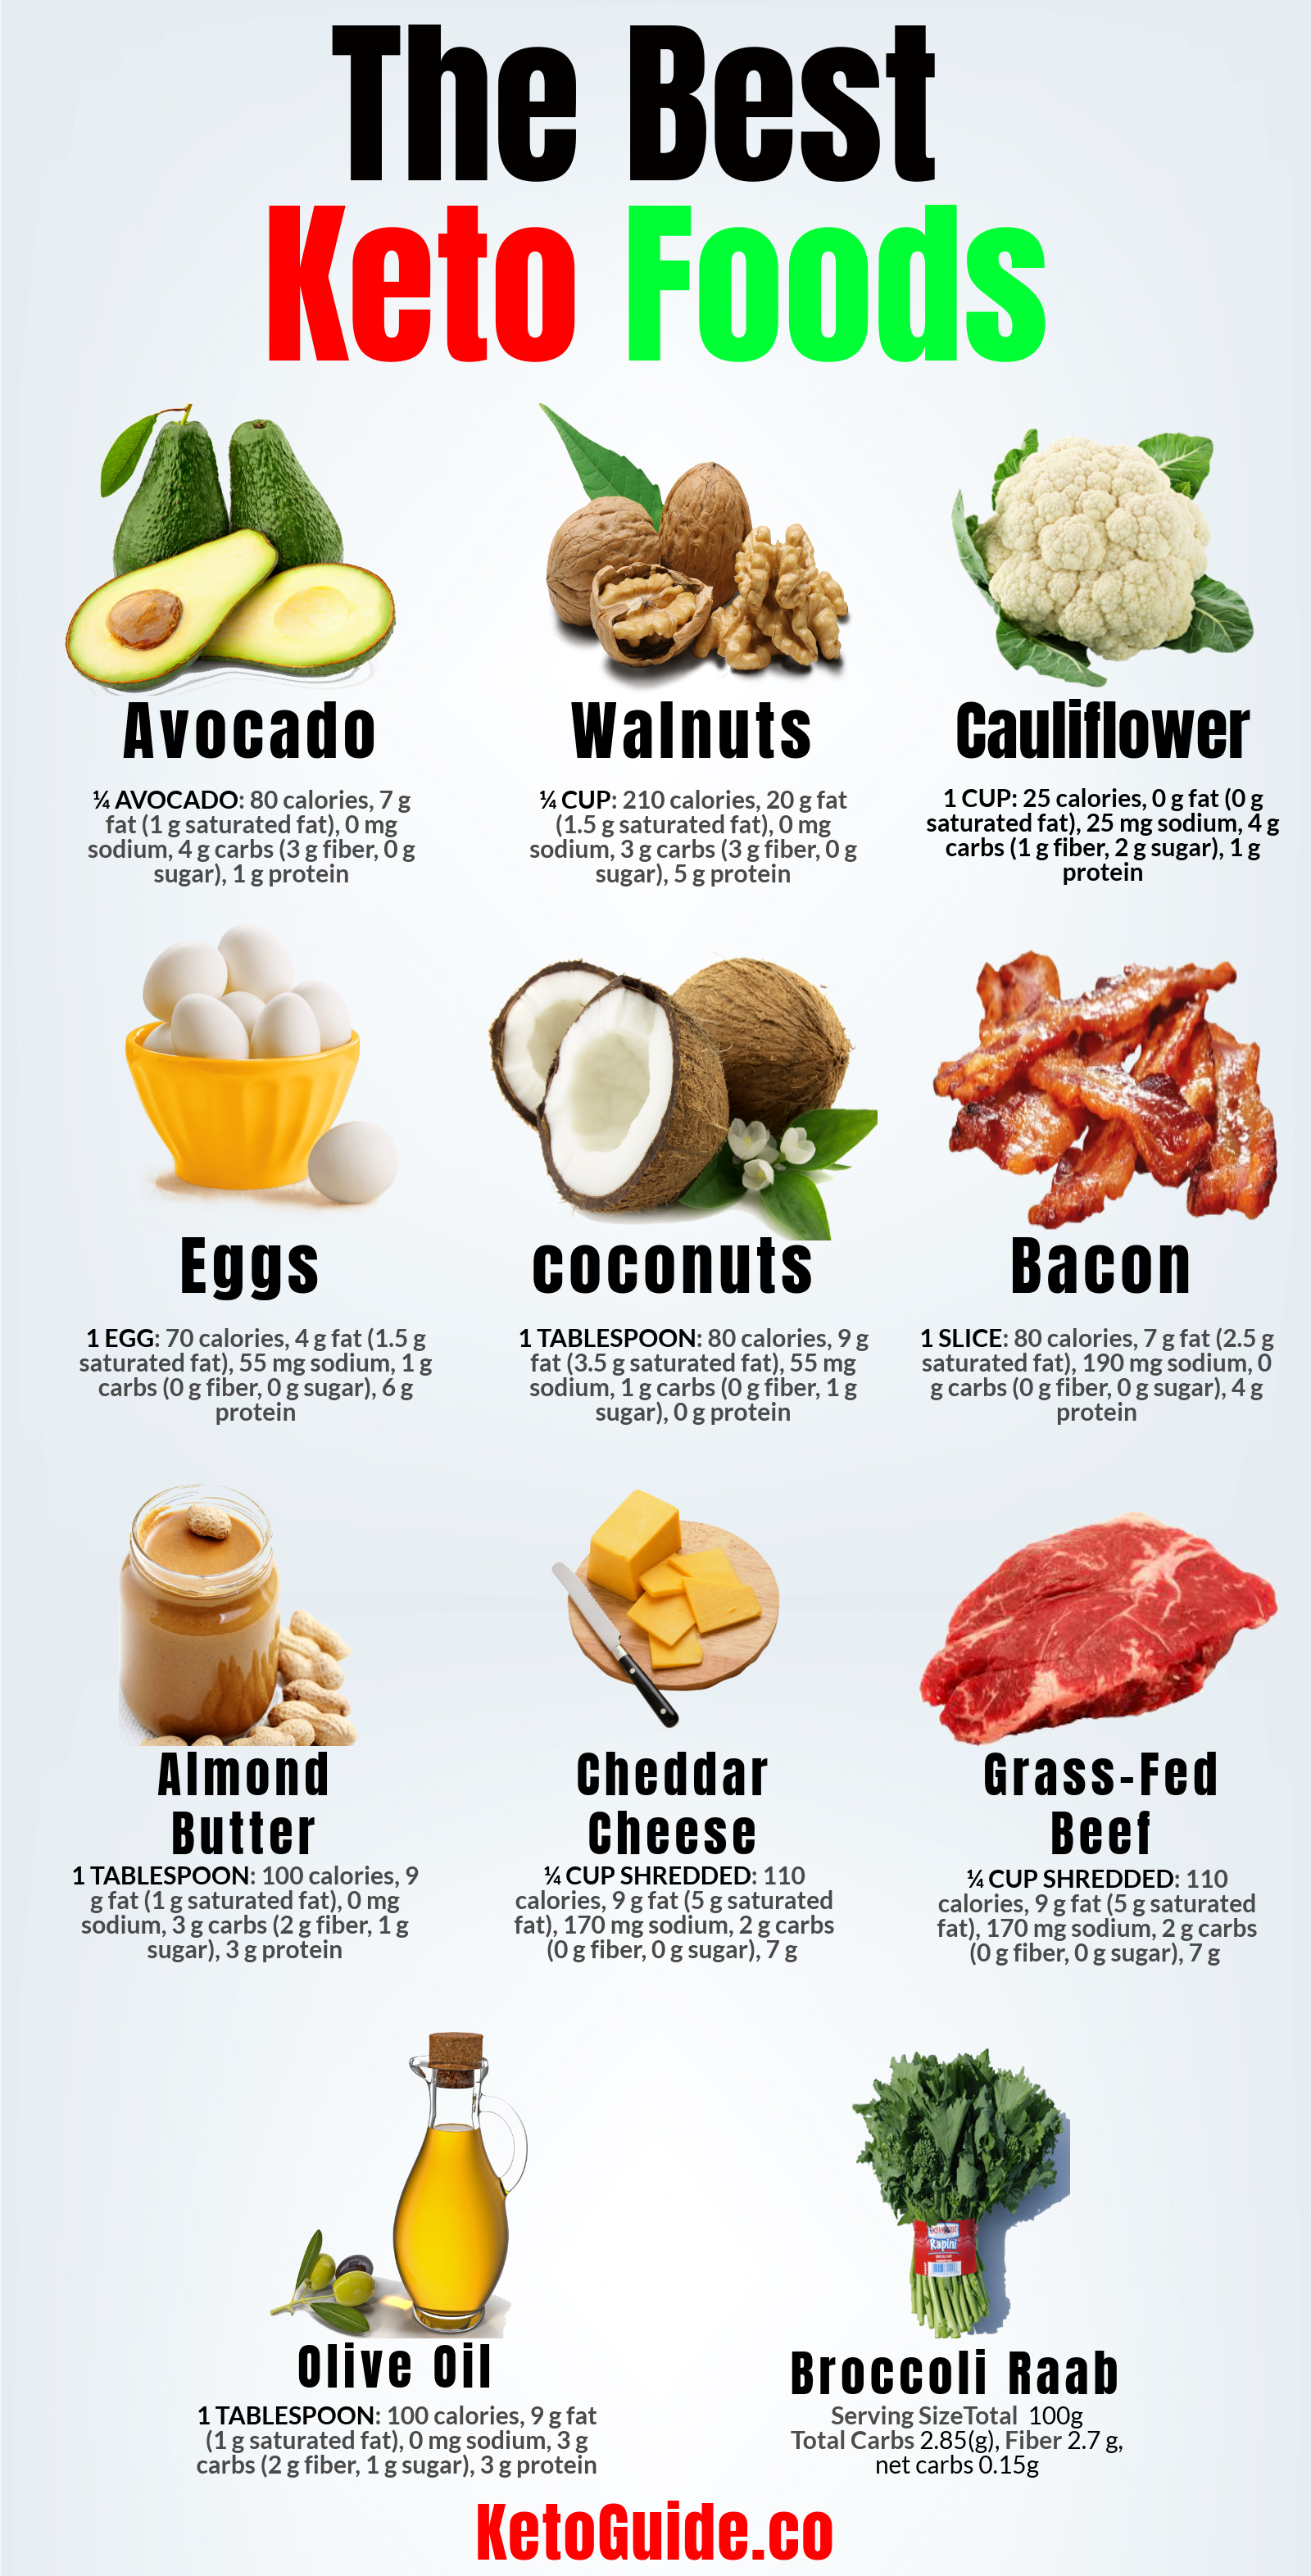 ketogenic diet saturated fats